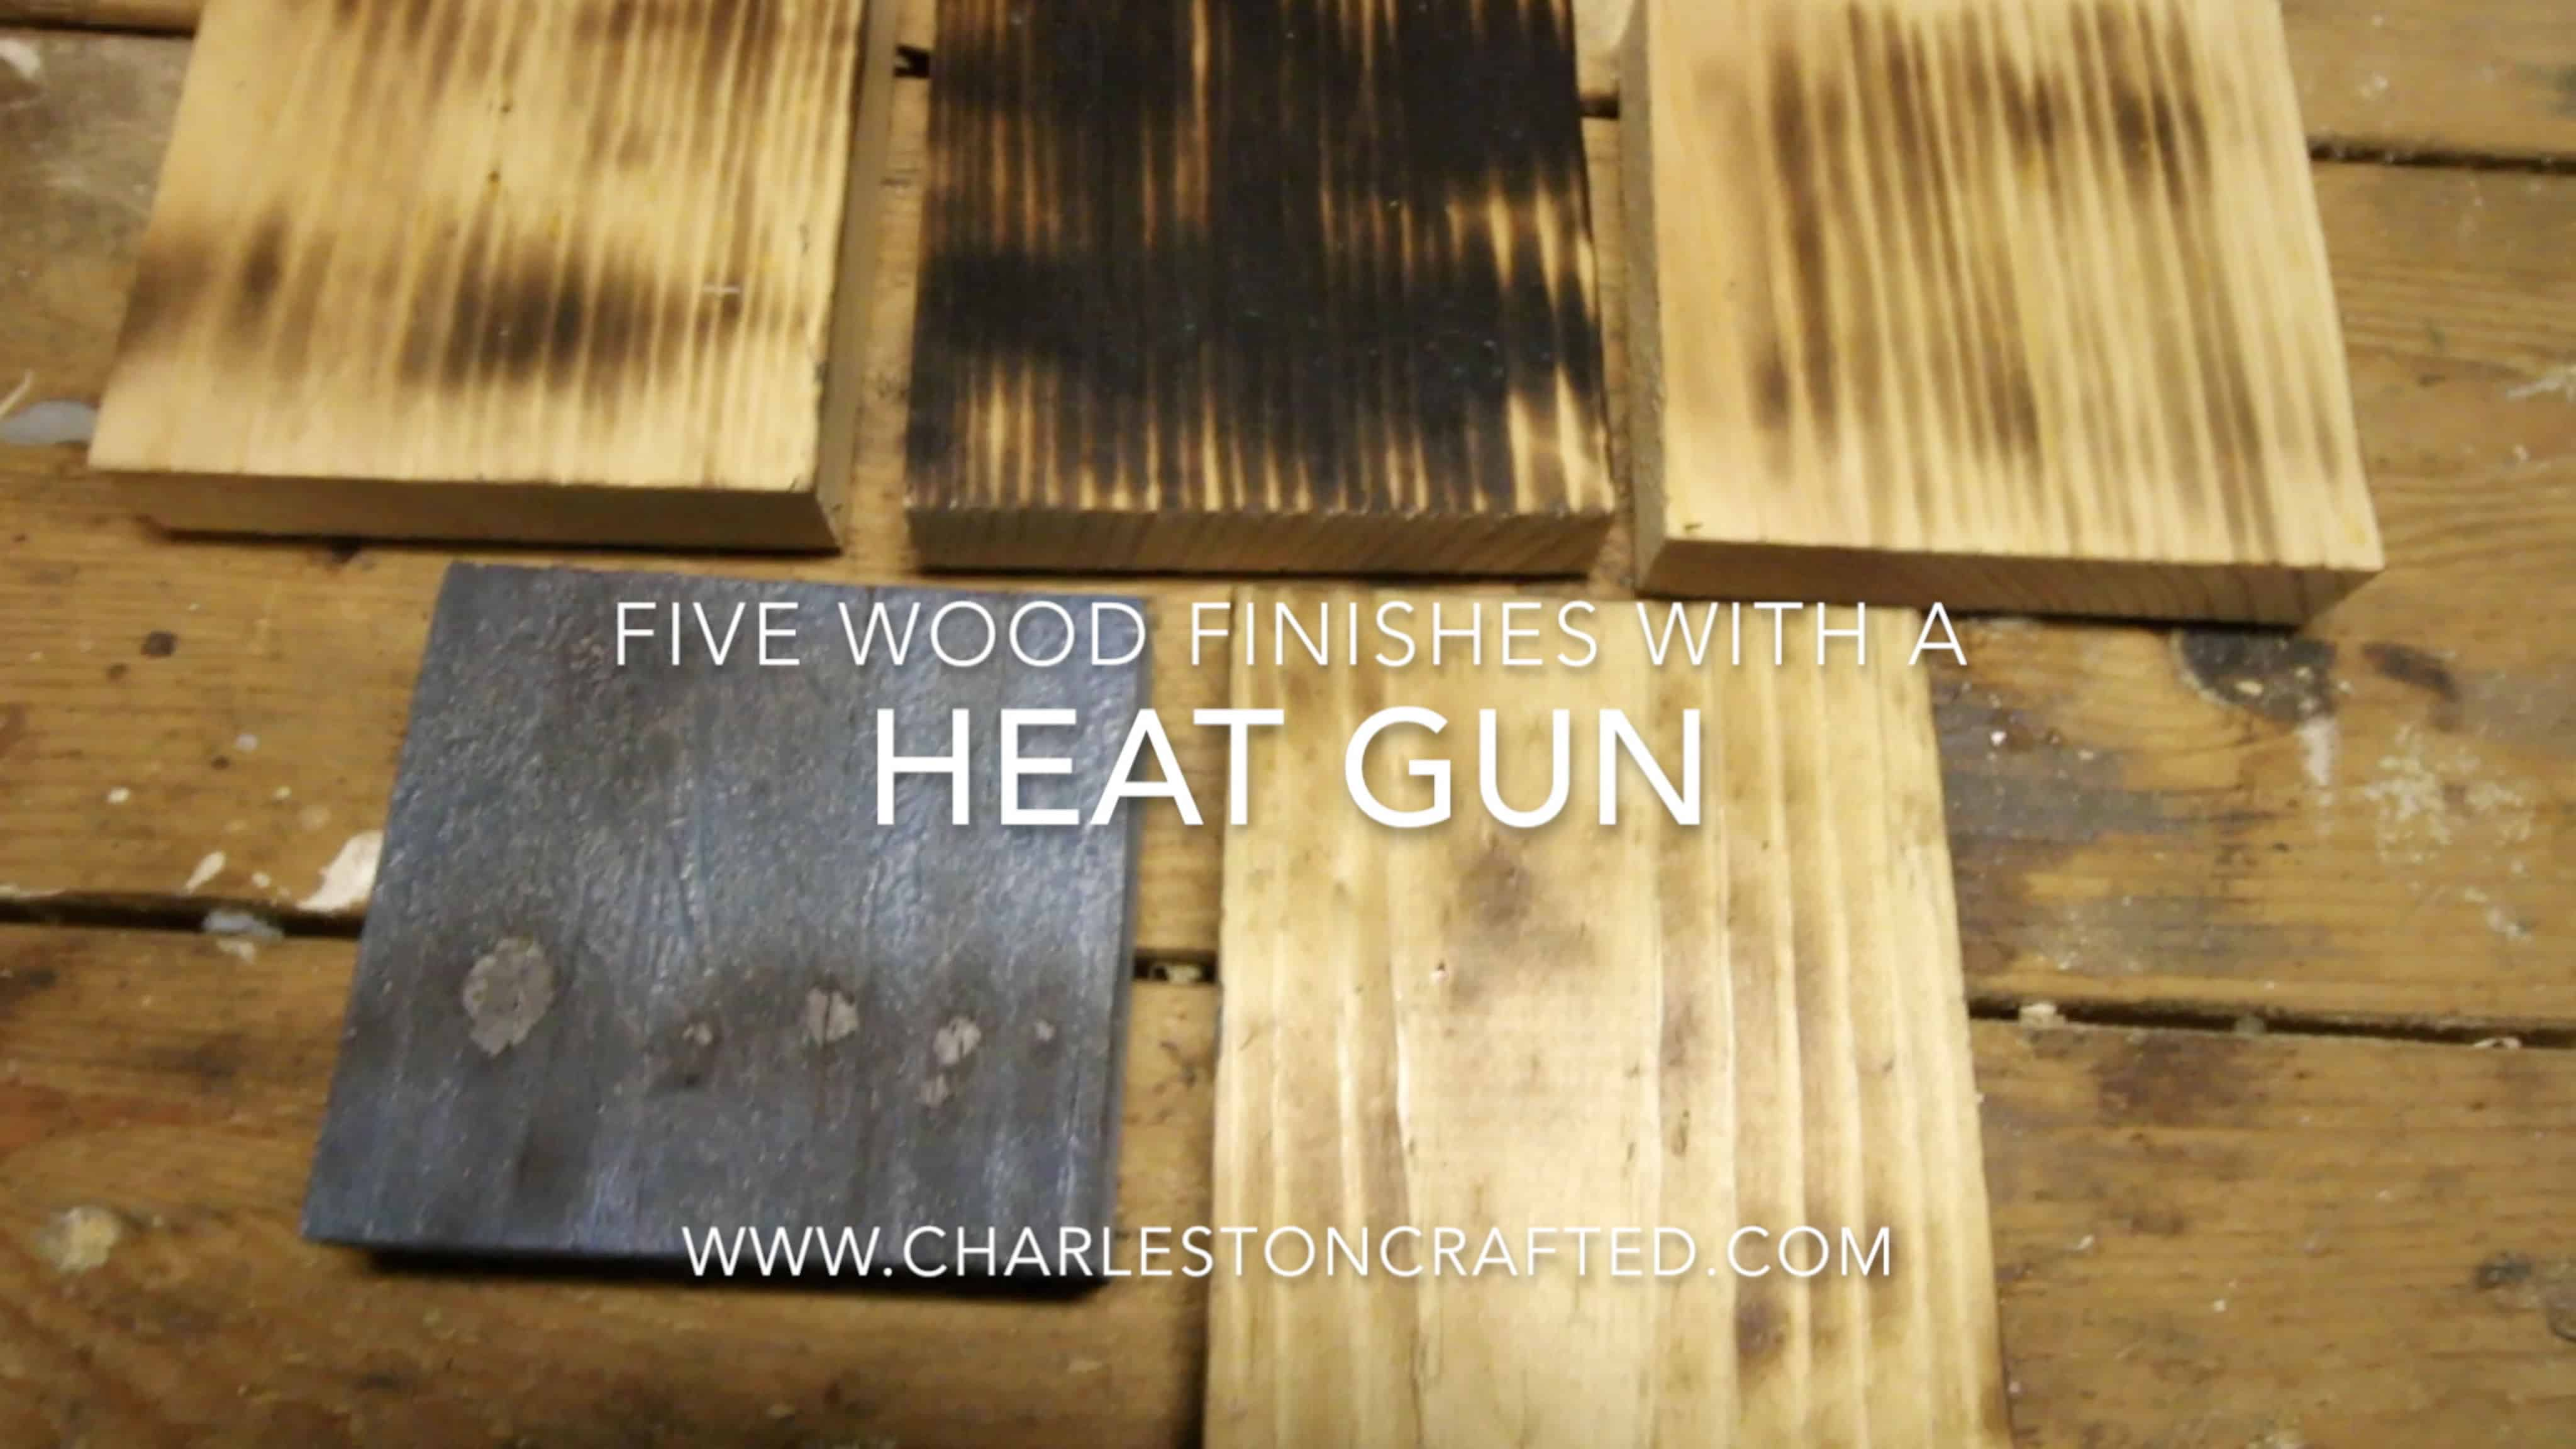 Five Wood Finishes with a Heat Gun - Charleston Crafted